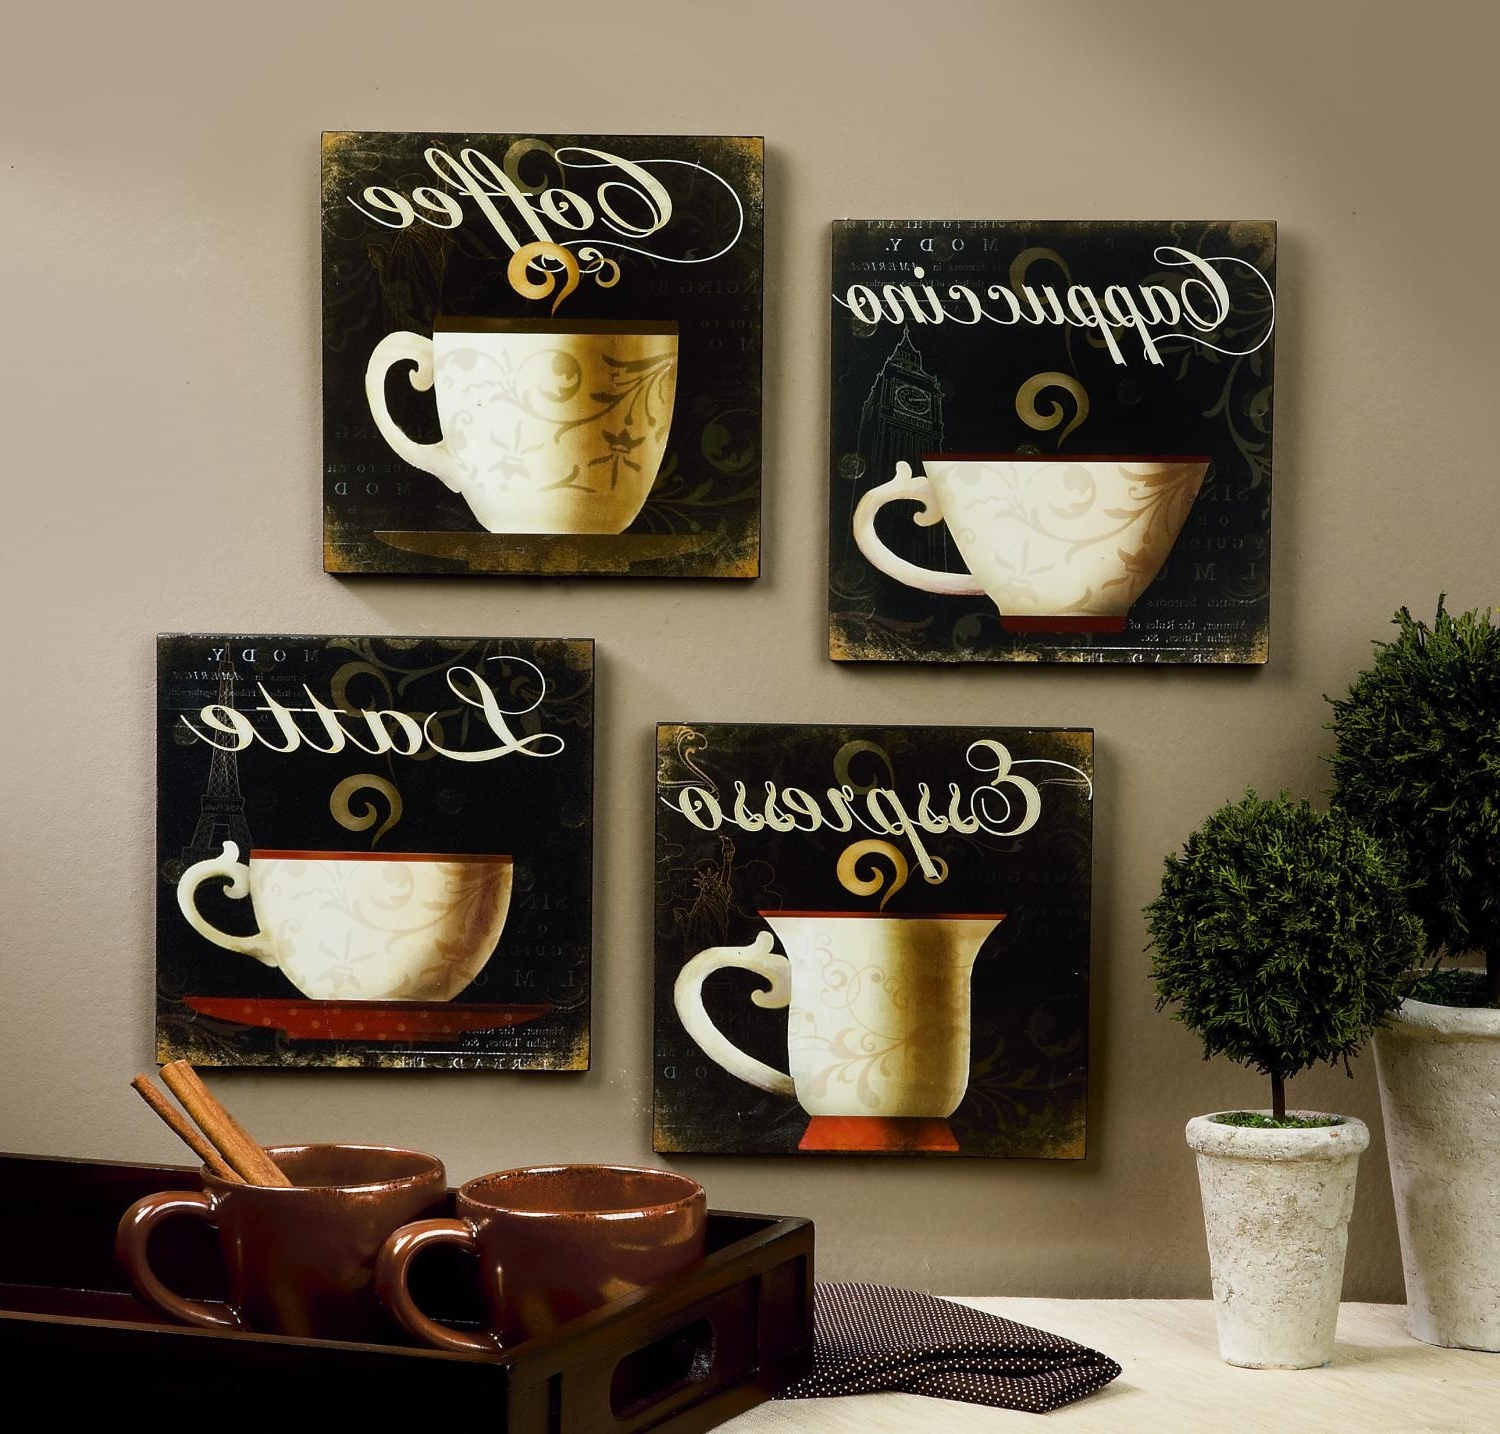 Wall Art Design Ideas: Simple House Coffee Wall Art Decorative With Fashionable Coffee Canvas Wall Art (View 15 of 15)